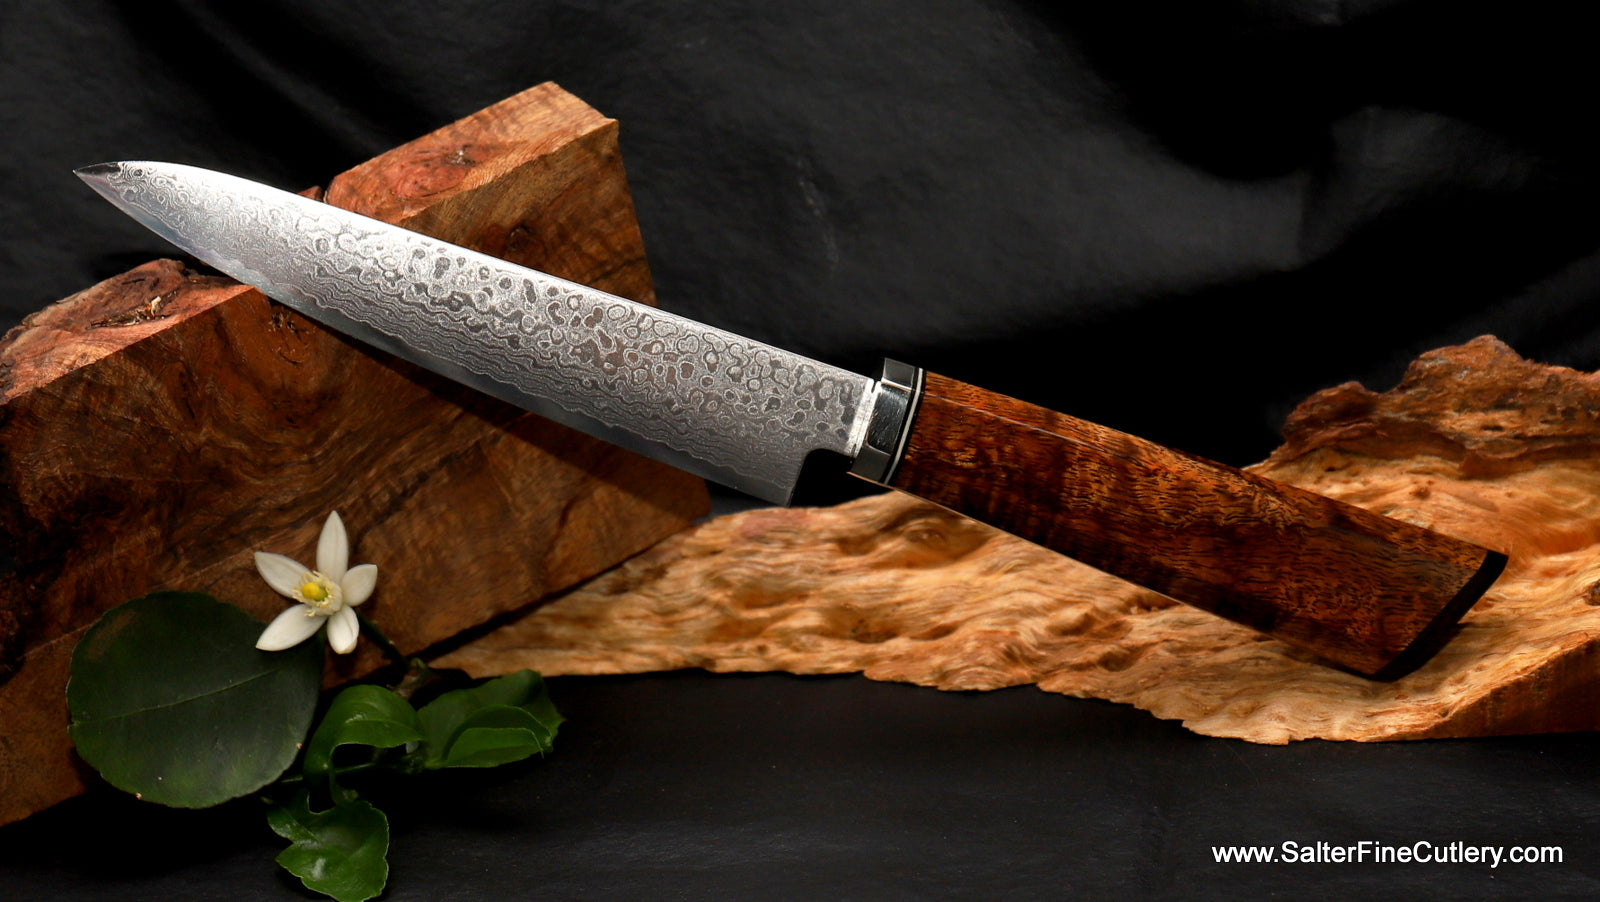 In Stock Item: 150mm Utility Kitchen Knife with 69-Layer Polished Damascus Blade